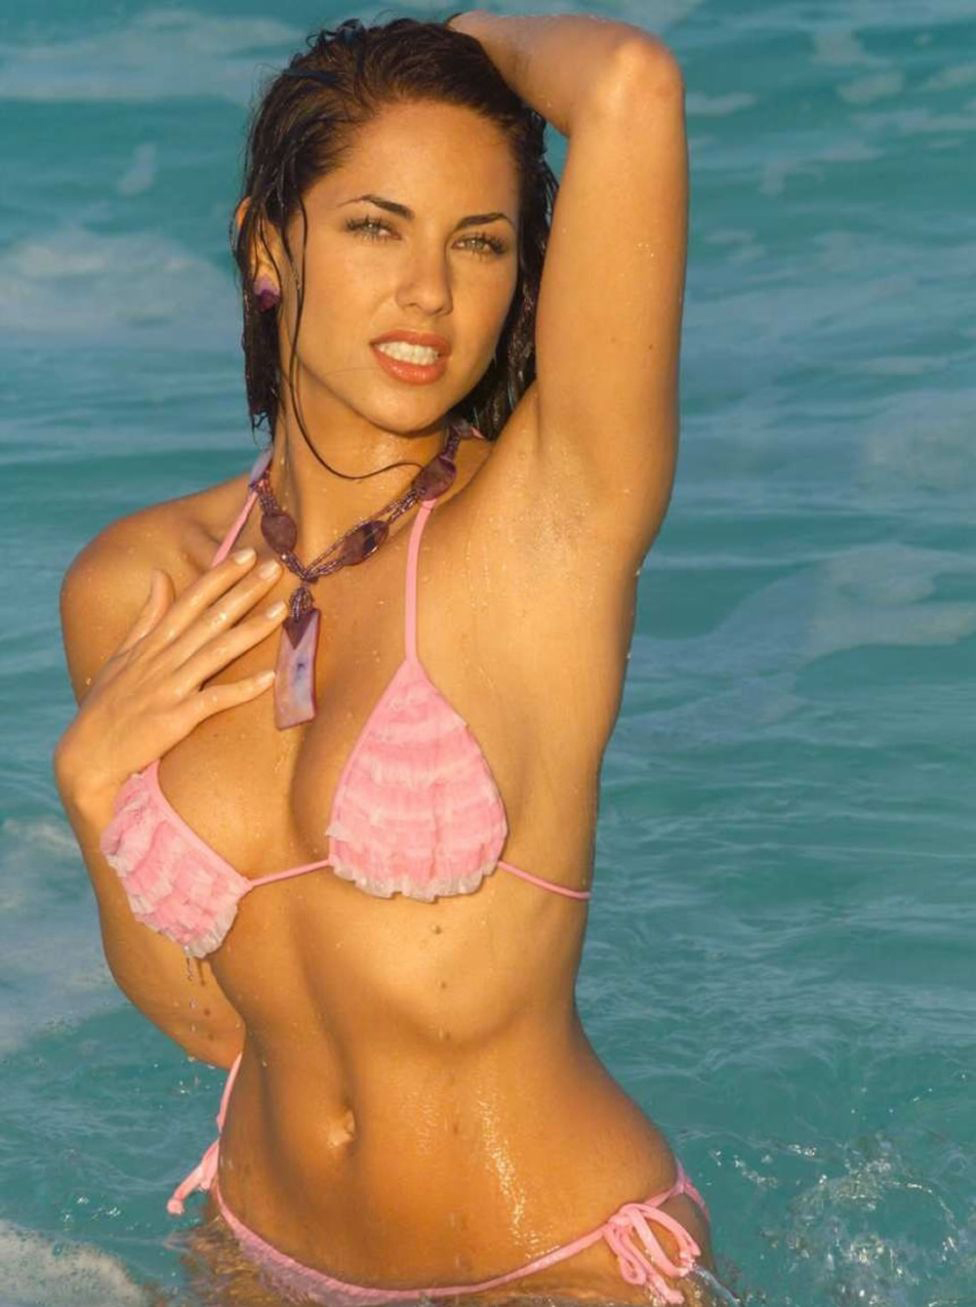 barbara mori looks hot in a bikini